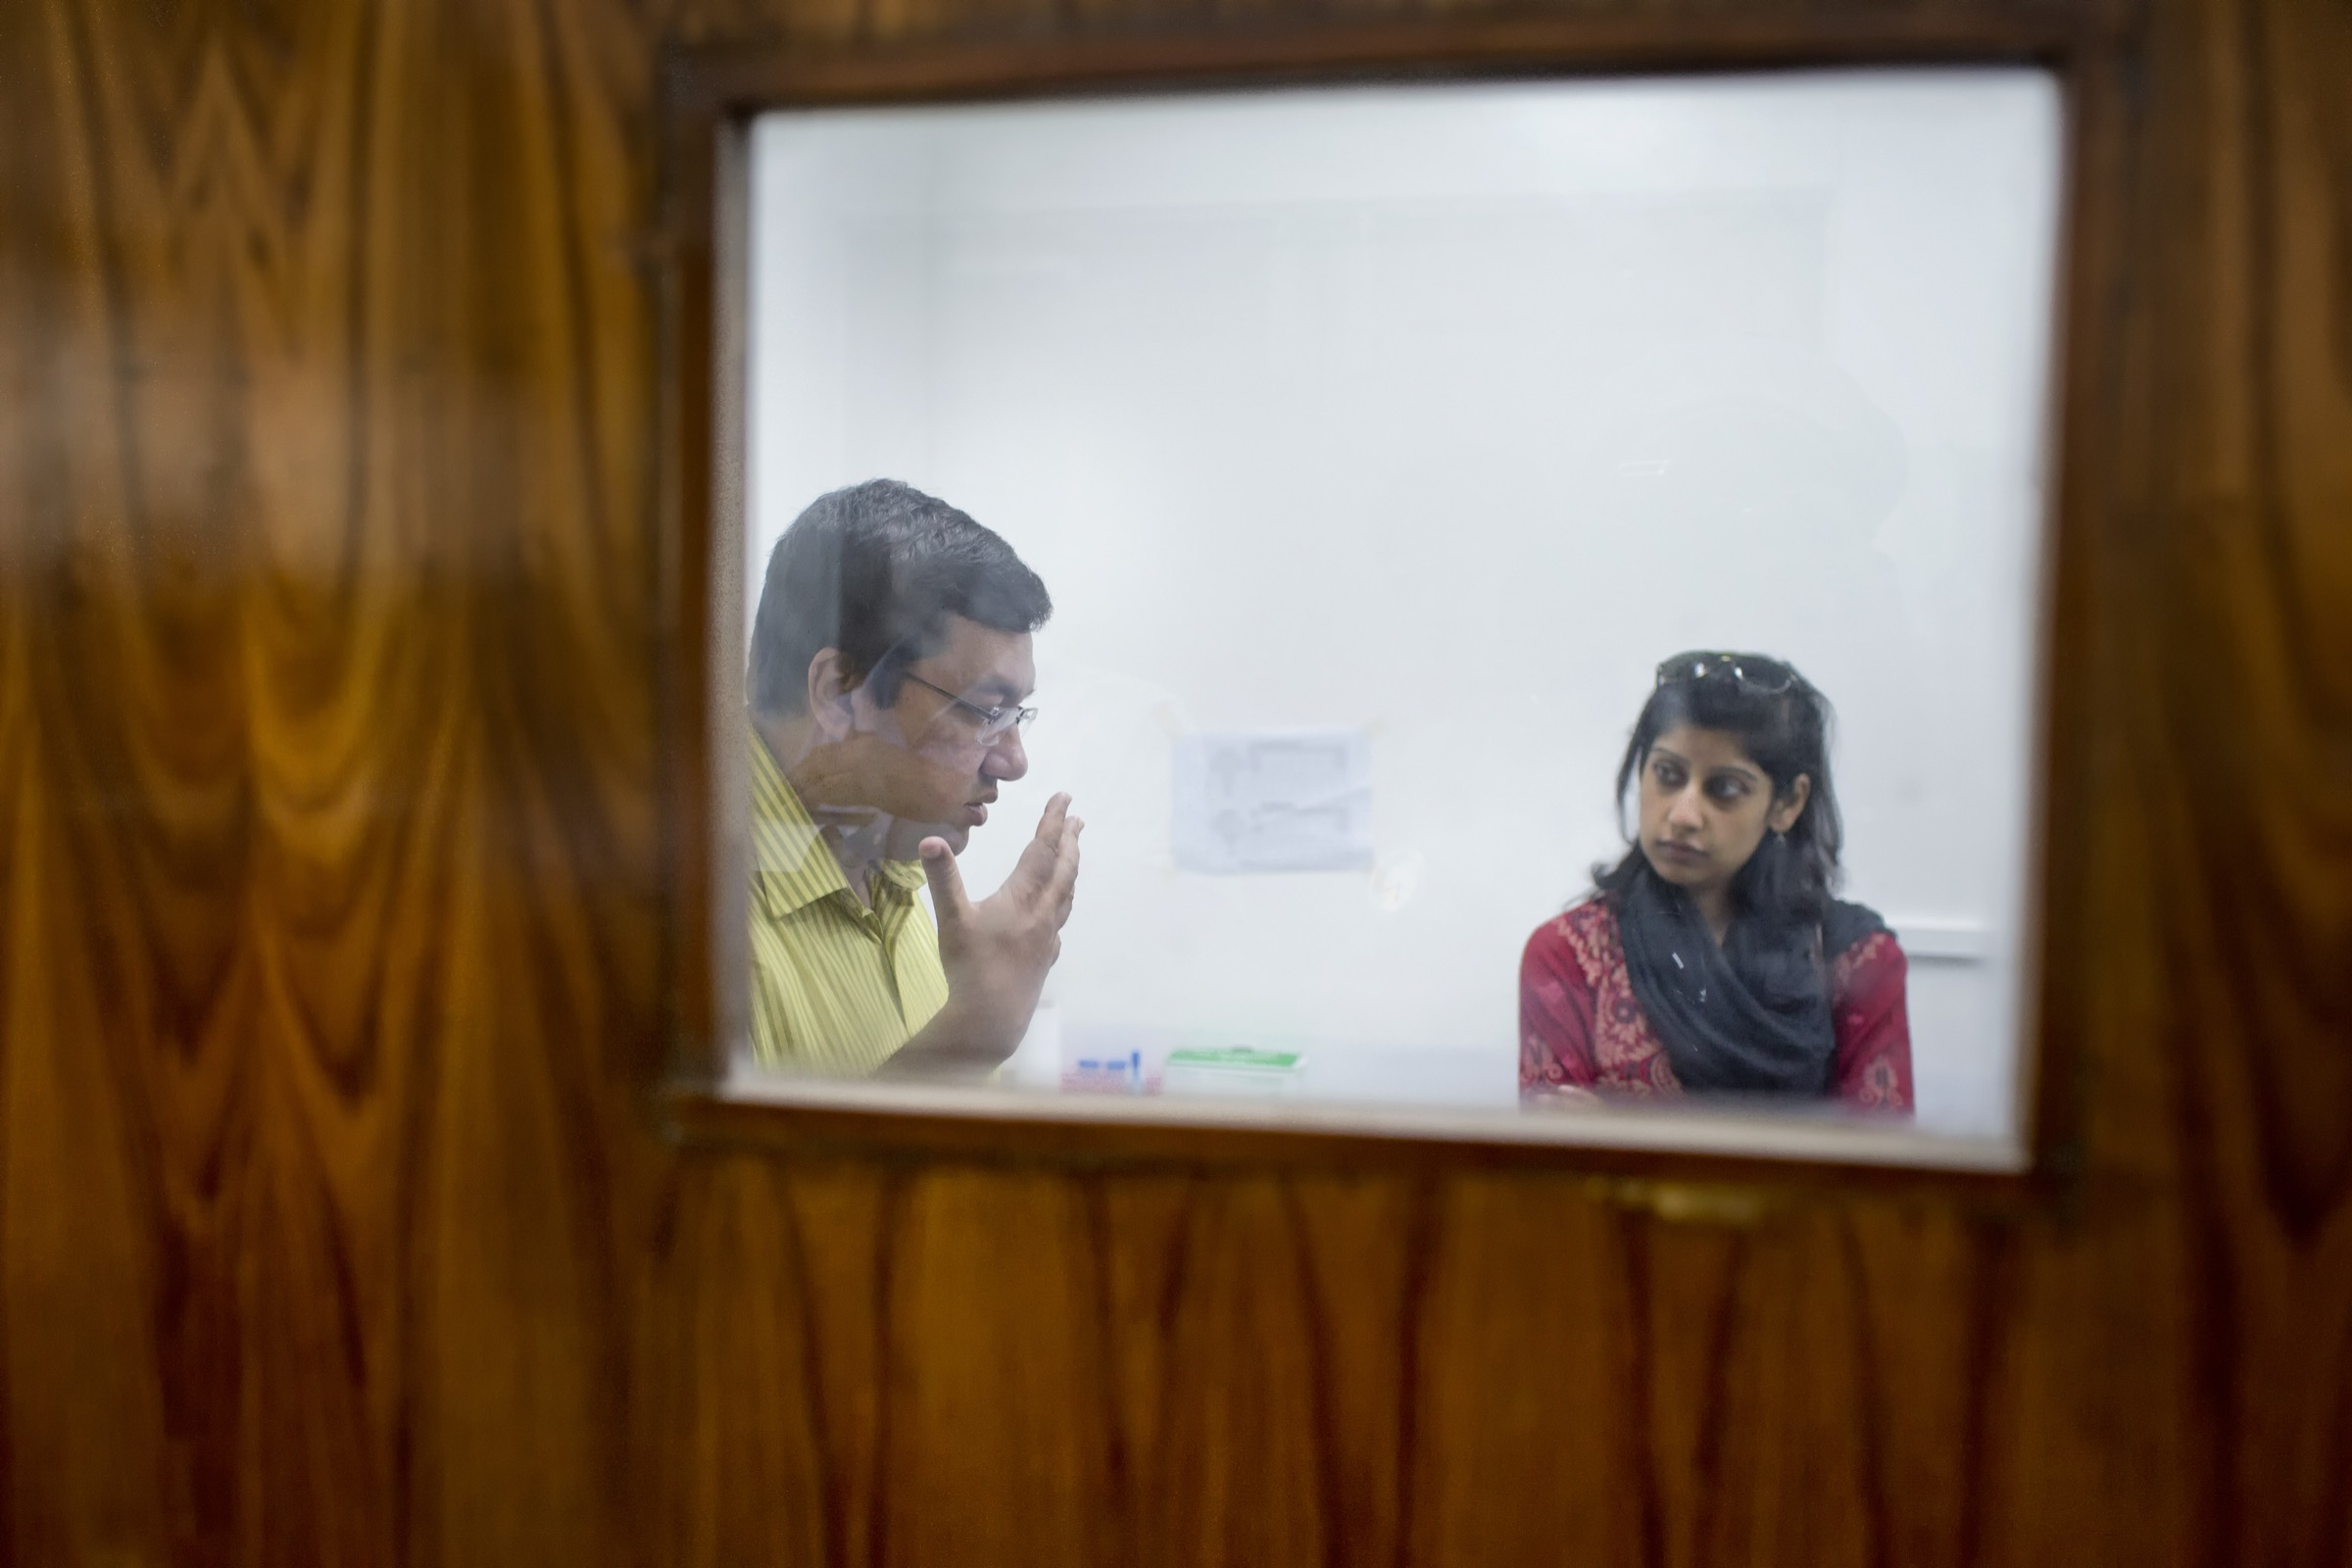 ICDDR,B's Hossain M. S. Sazzad and Farasha Bashir discuss one of the organization's initiatives, which aims to better understand the root causes of Bangladesh's high mortality rate among children. Photograph by A.M. Ahad